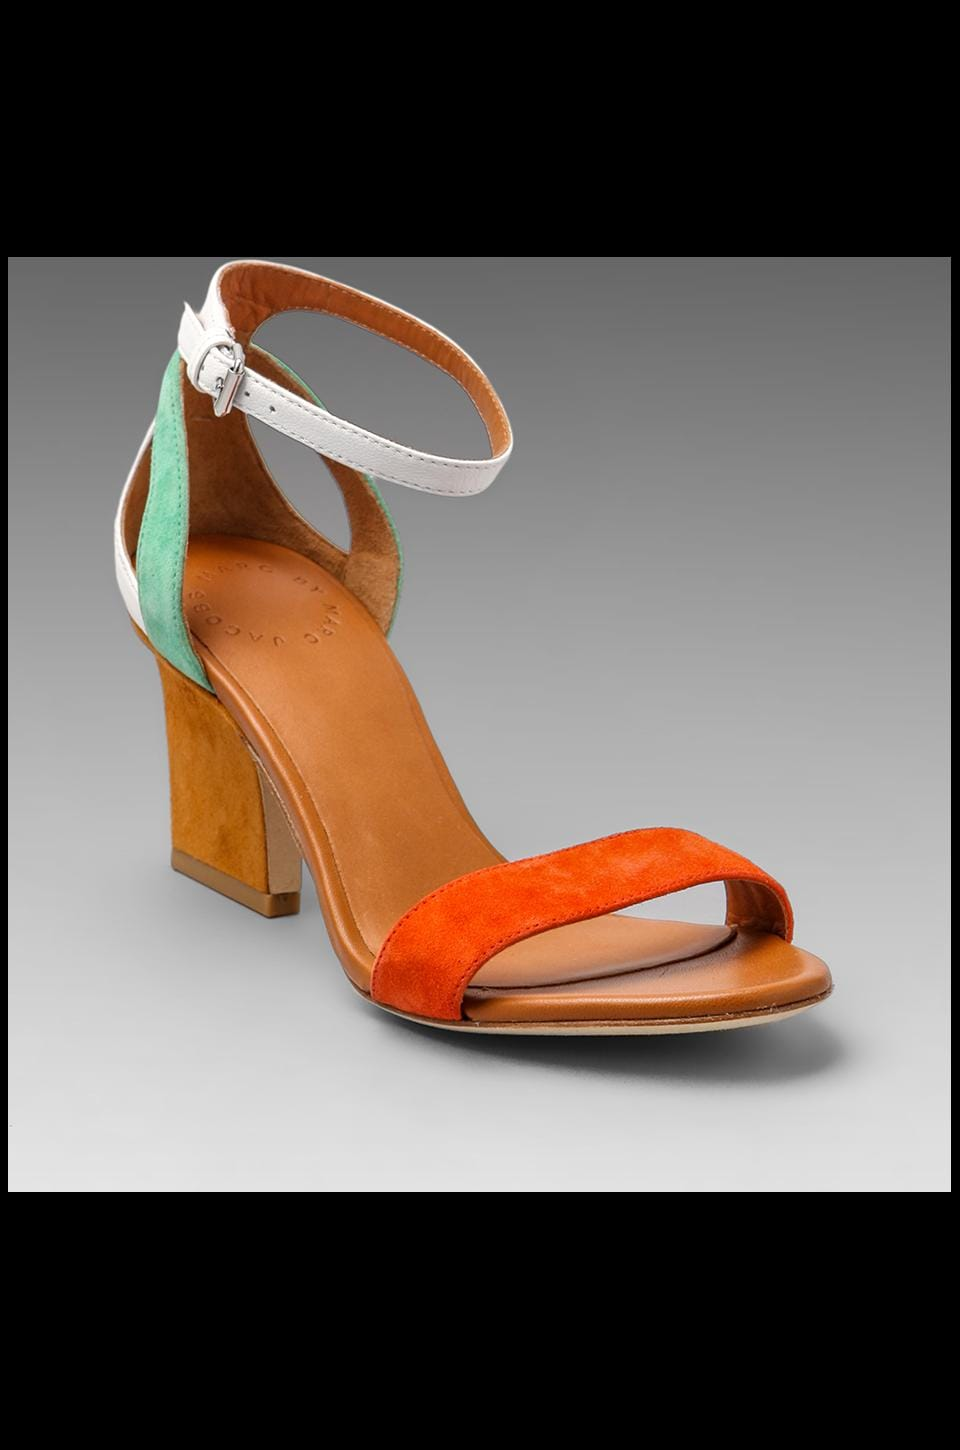 Marc by Marc Jacobs Suede Color Weave Heel Sandal in Orange/Tan/White/Green